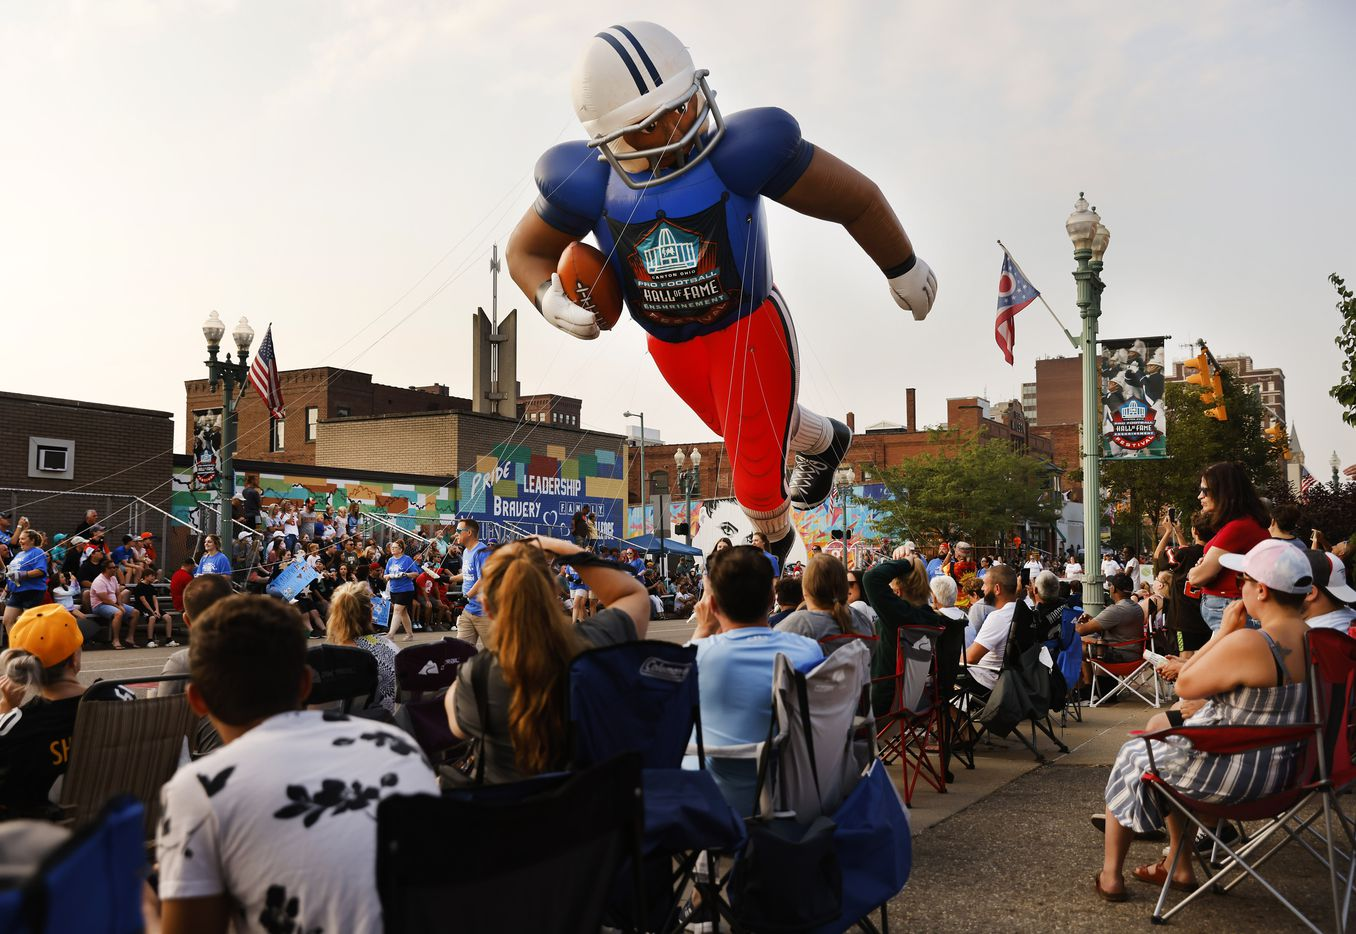 NFL fans watch as a large inflatable football player floats down Cleveland Ave. during the Canton Repository Grand Parade in downtown Canton, Ohio, Saturday, August 7, 2021. The Pro Football Hall of Fame parade honored newly elected and former members of the Hall, including newcomers and former Dallas Cowboys players Cliff Harris, Drew Pearson and head coach Jimmy Johnson. (Tom Fox/The Dallas Morning News)